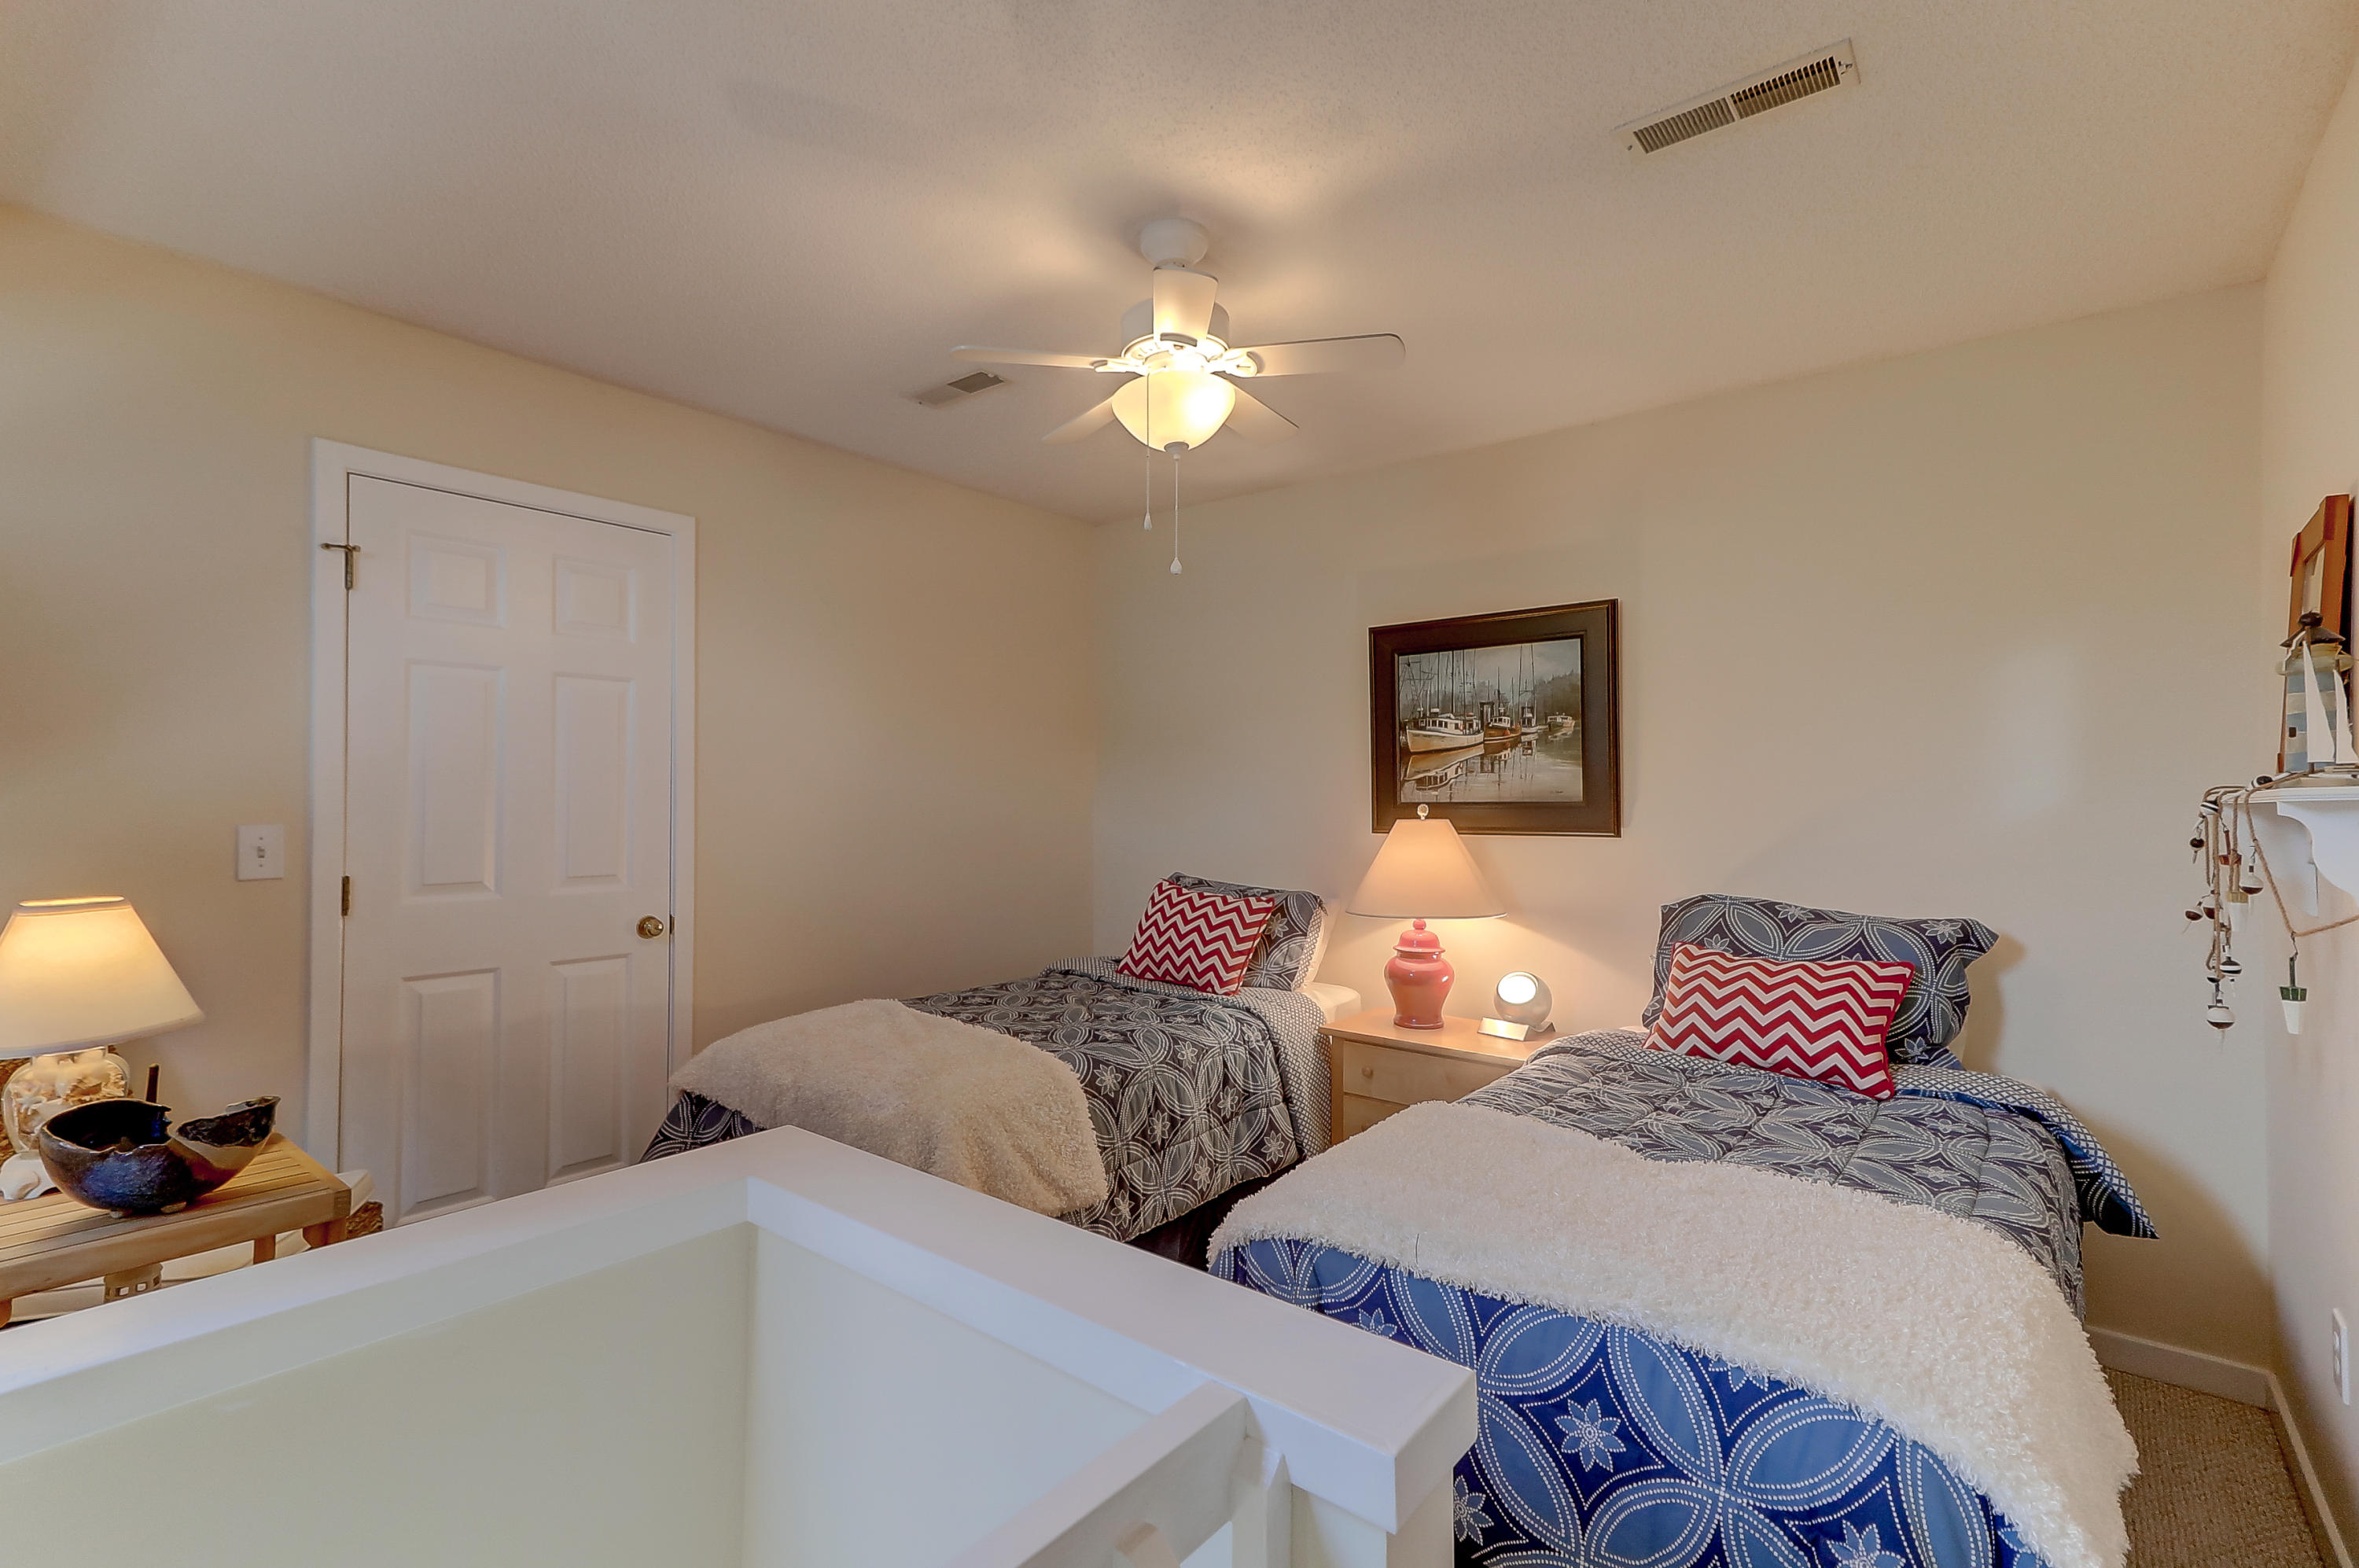 Wild Dunes Resort Homes For Sale - 5 Links Clubhouse, Isle of Palms, SC - 20